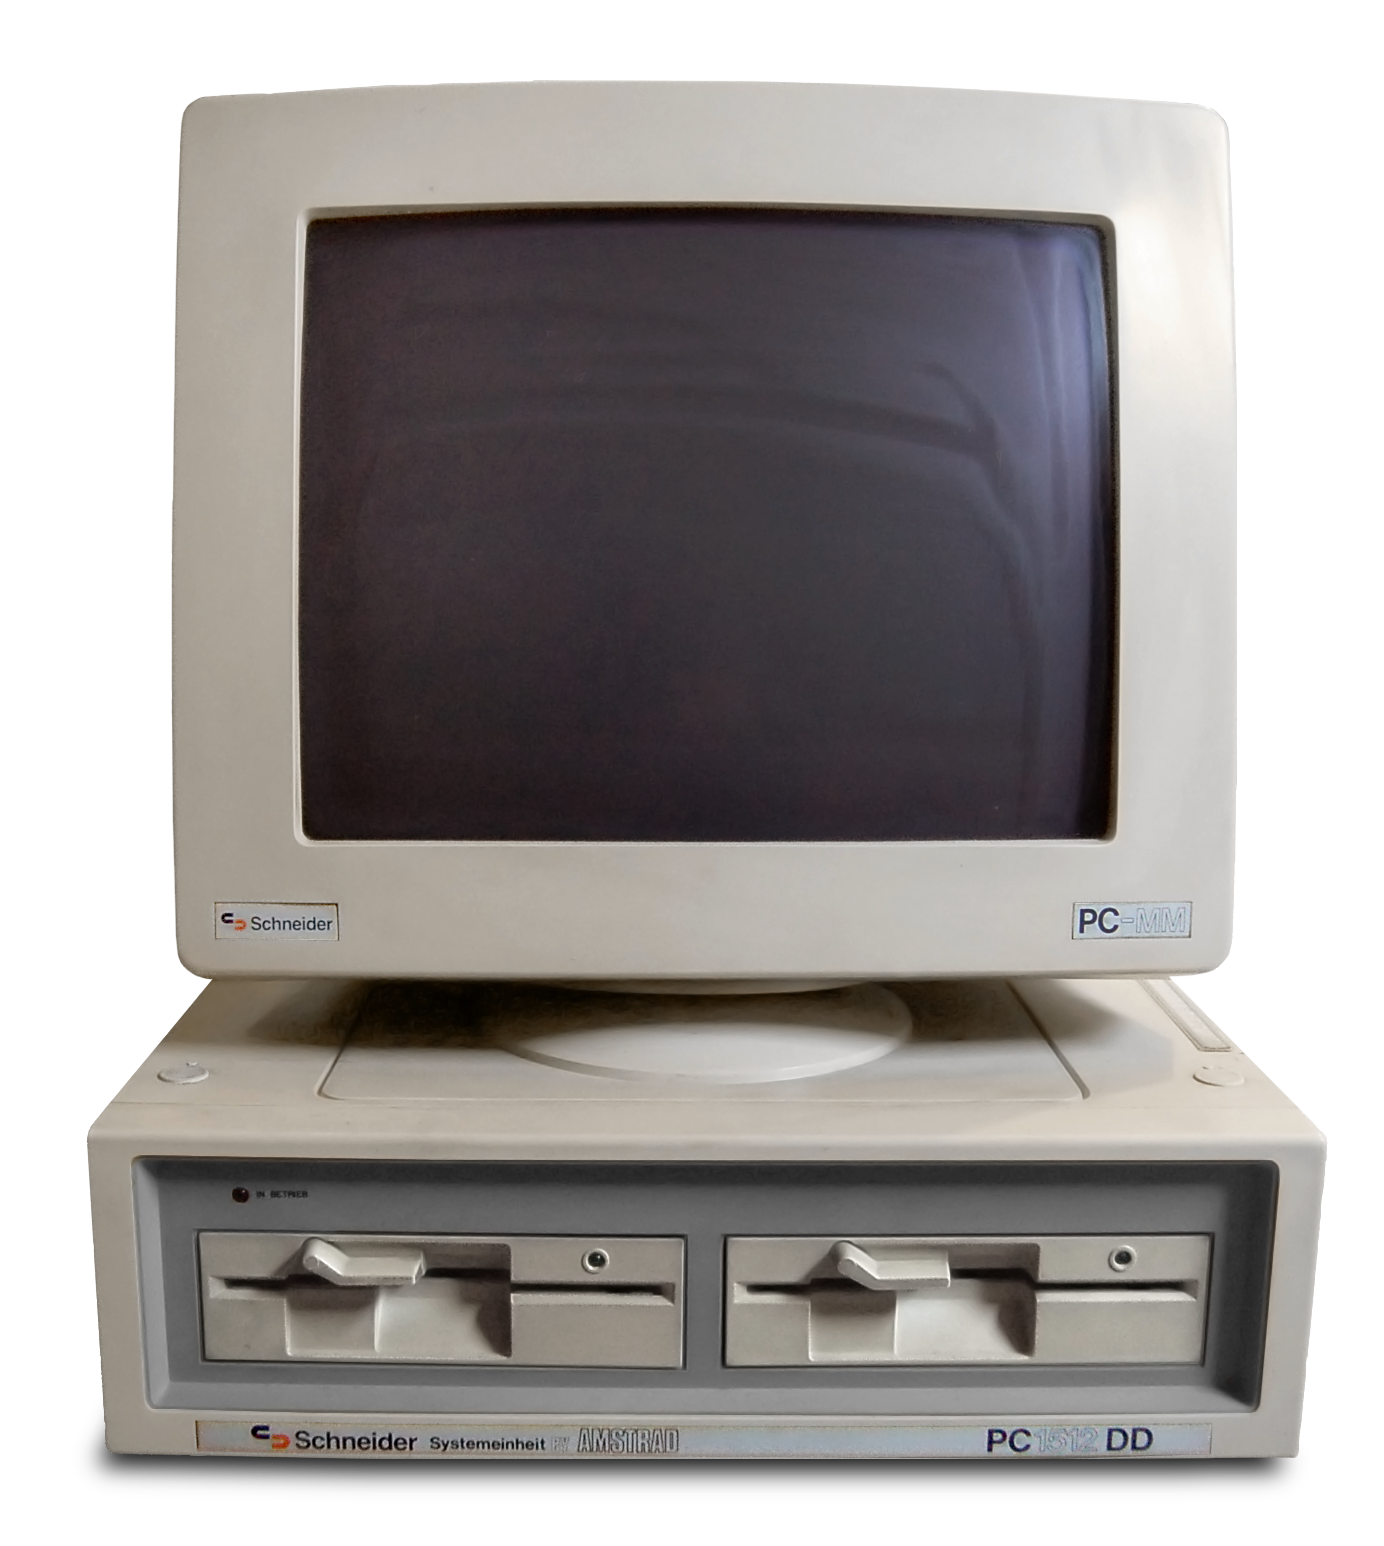 Ibm Amstrad Personal Vintage Cpc Compatible Pc PNG Image